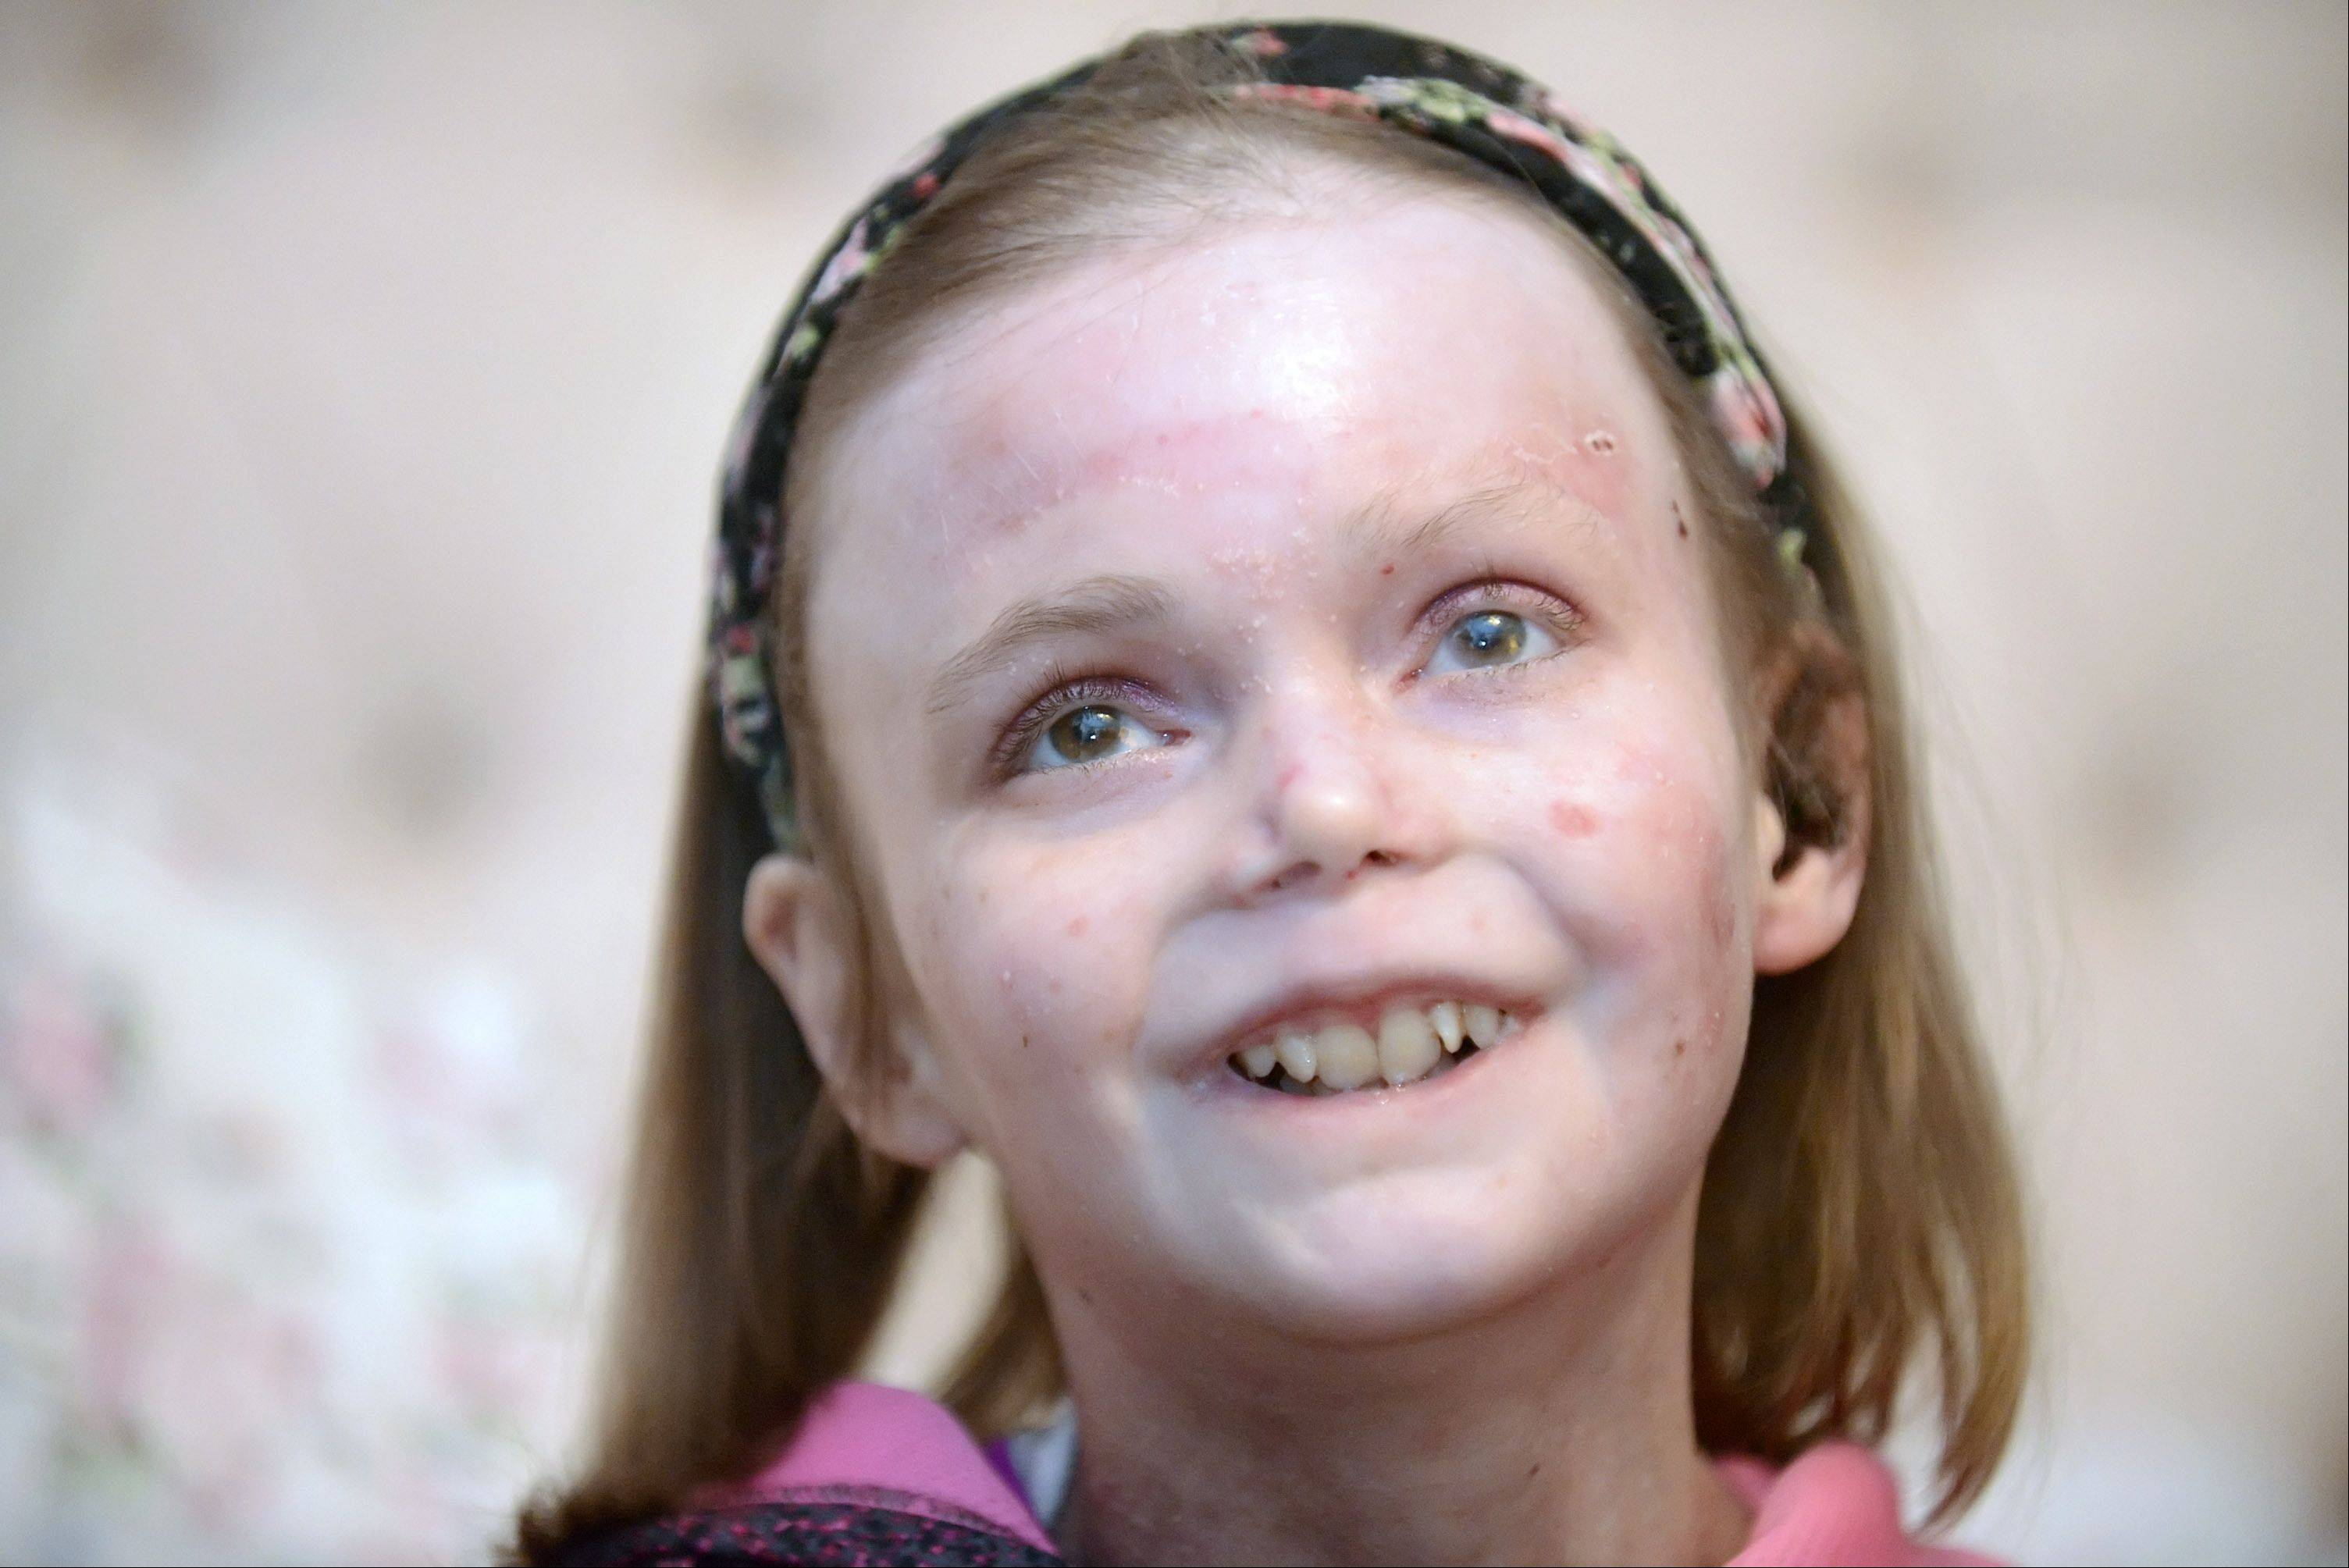 Catharine Steiner, 16, of St. Charles smiles as she absorbs her made-over bedroom on Thursday. Special Spaces Chicagoland, a nonprofit organization, creates dream bedrooms for children with life-threatening medical conditions. Catharine has was born with recessive dystrophic epidermolysis bullosa, a rare genetic connective tissue disorder. There are many genetic and symptomatic variations of the disease, but all share the symptom of extremely fragile skin can easily blister or tear from minor friction or trauma.